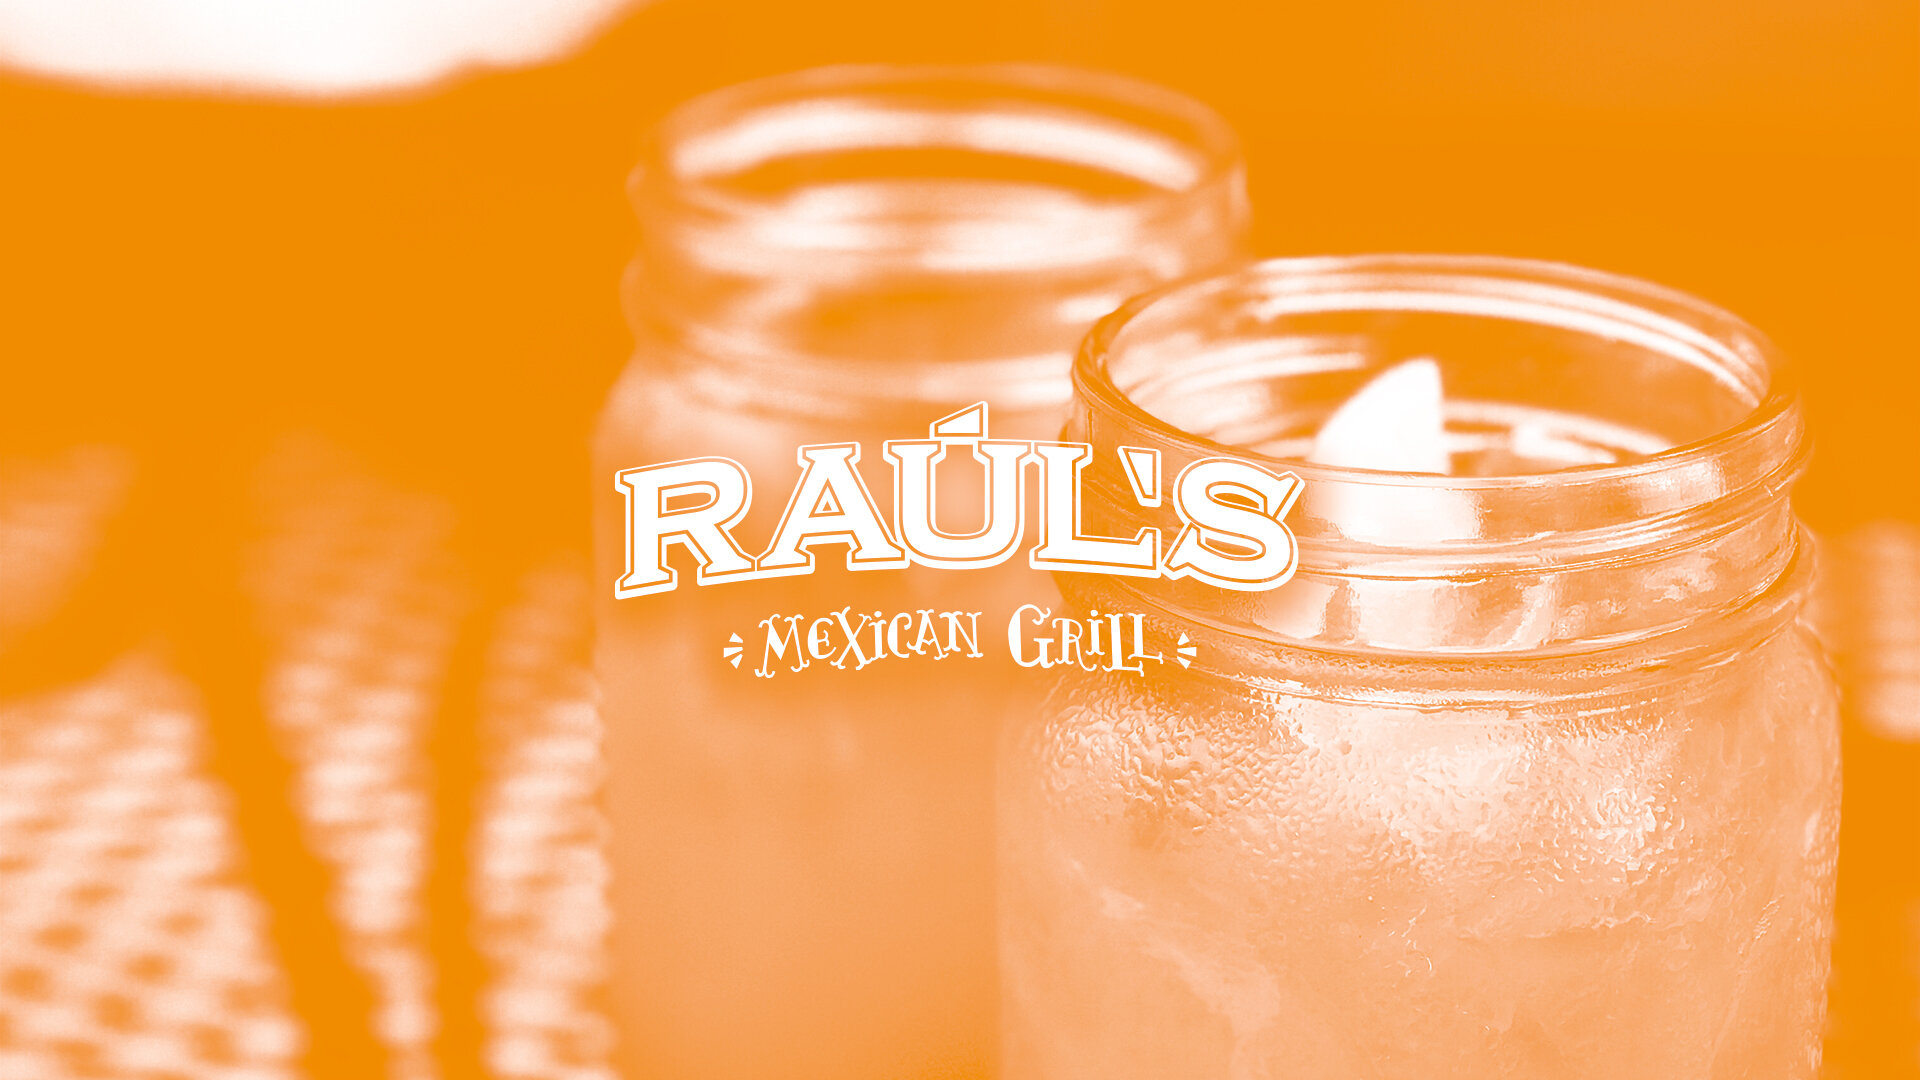 Raul's Mexican Grill -